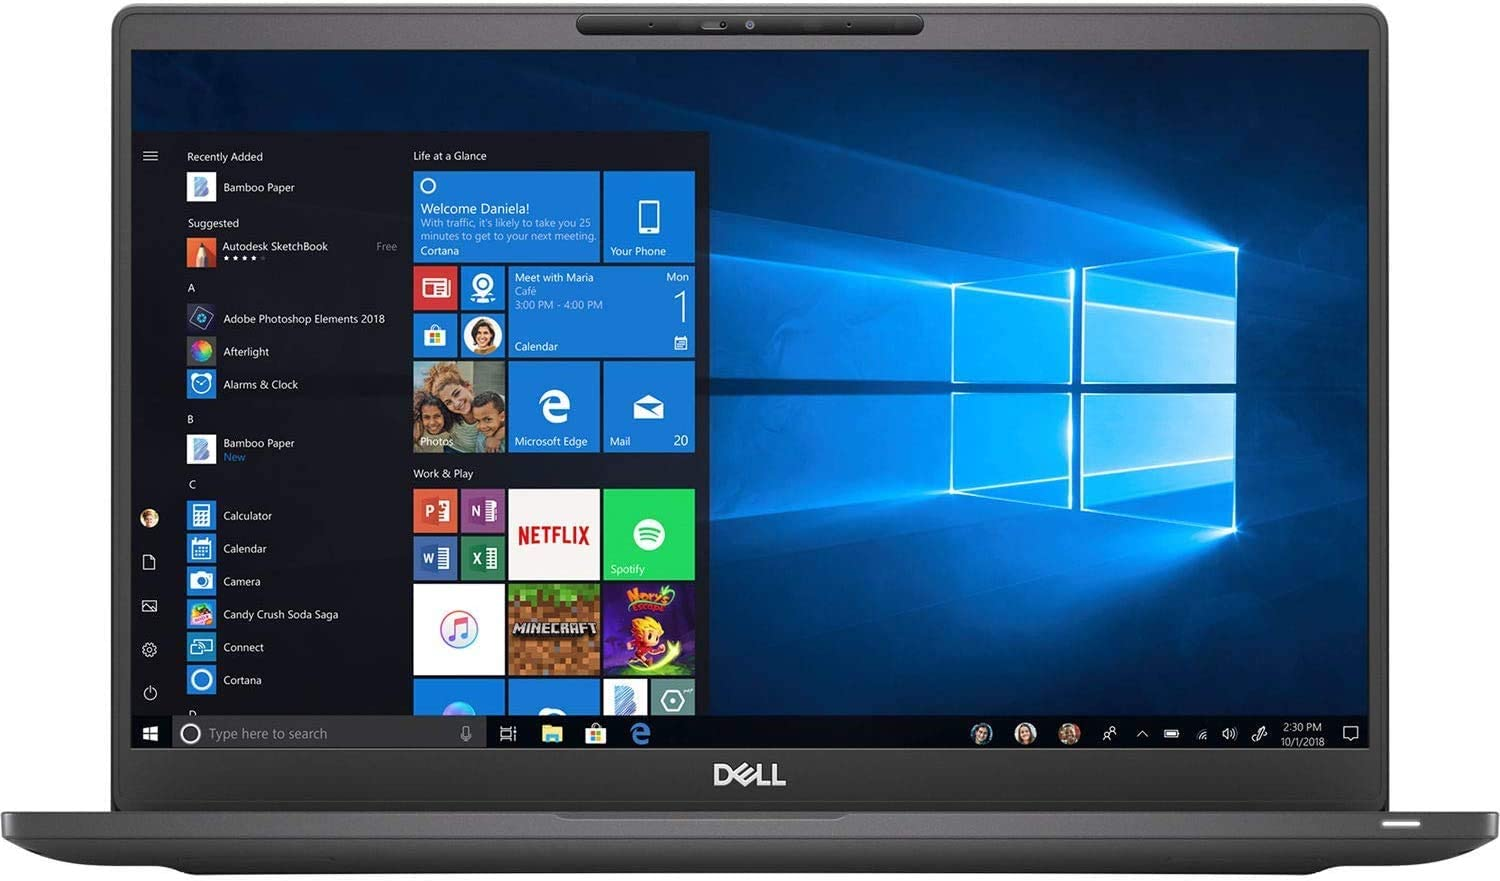 Dell Latitude 7400 Laptop - Intel Core i7-8665U vPro - 512GB Solid State Drive - 16GB DDR4 - 1.90 GHz (Max Turbo Frequency 4.80 GHz) - Integrated Intel UHD 620 - Windows 10 Pro-64 bit - New